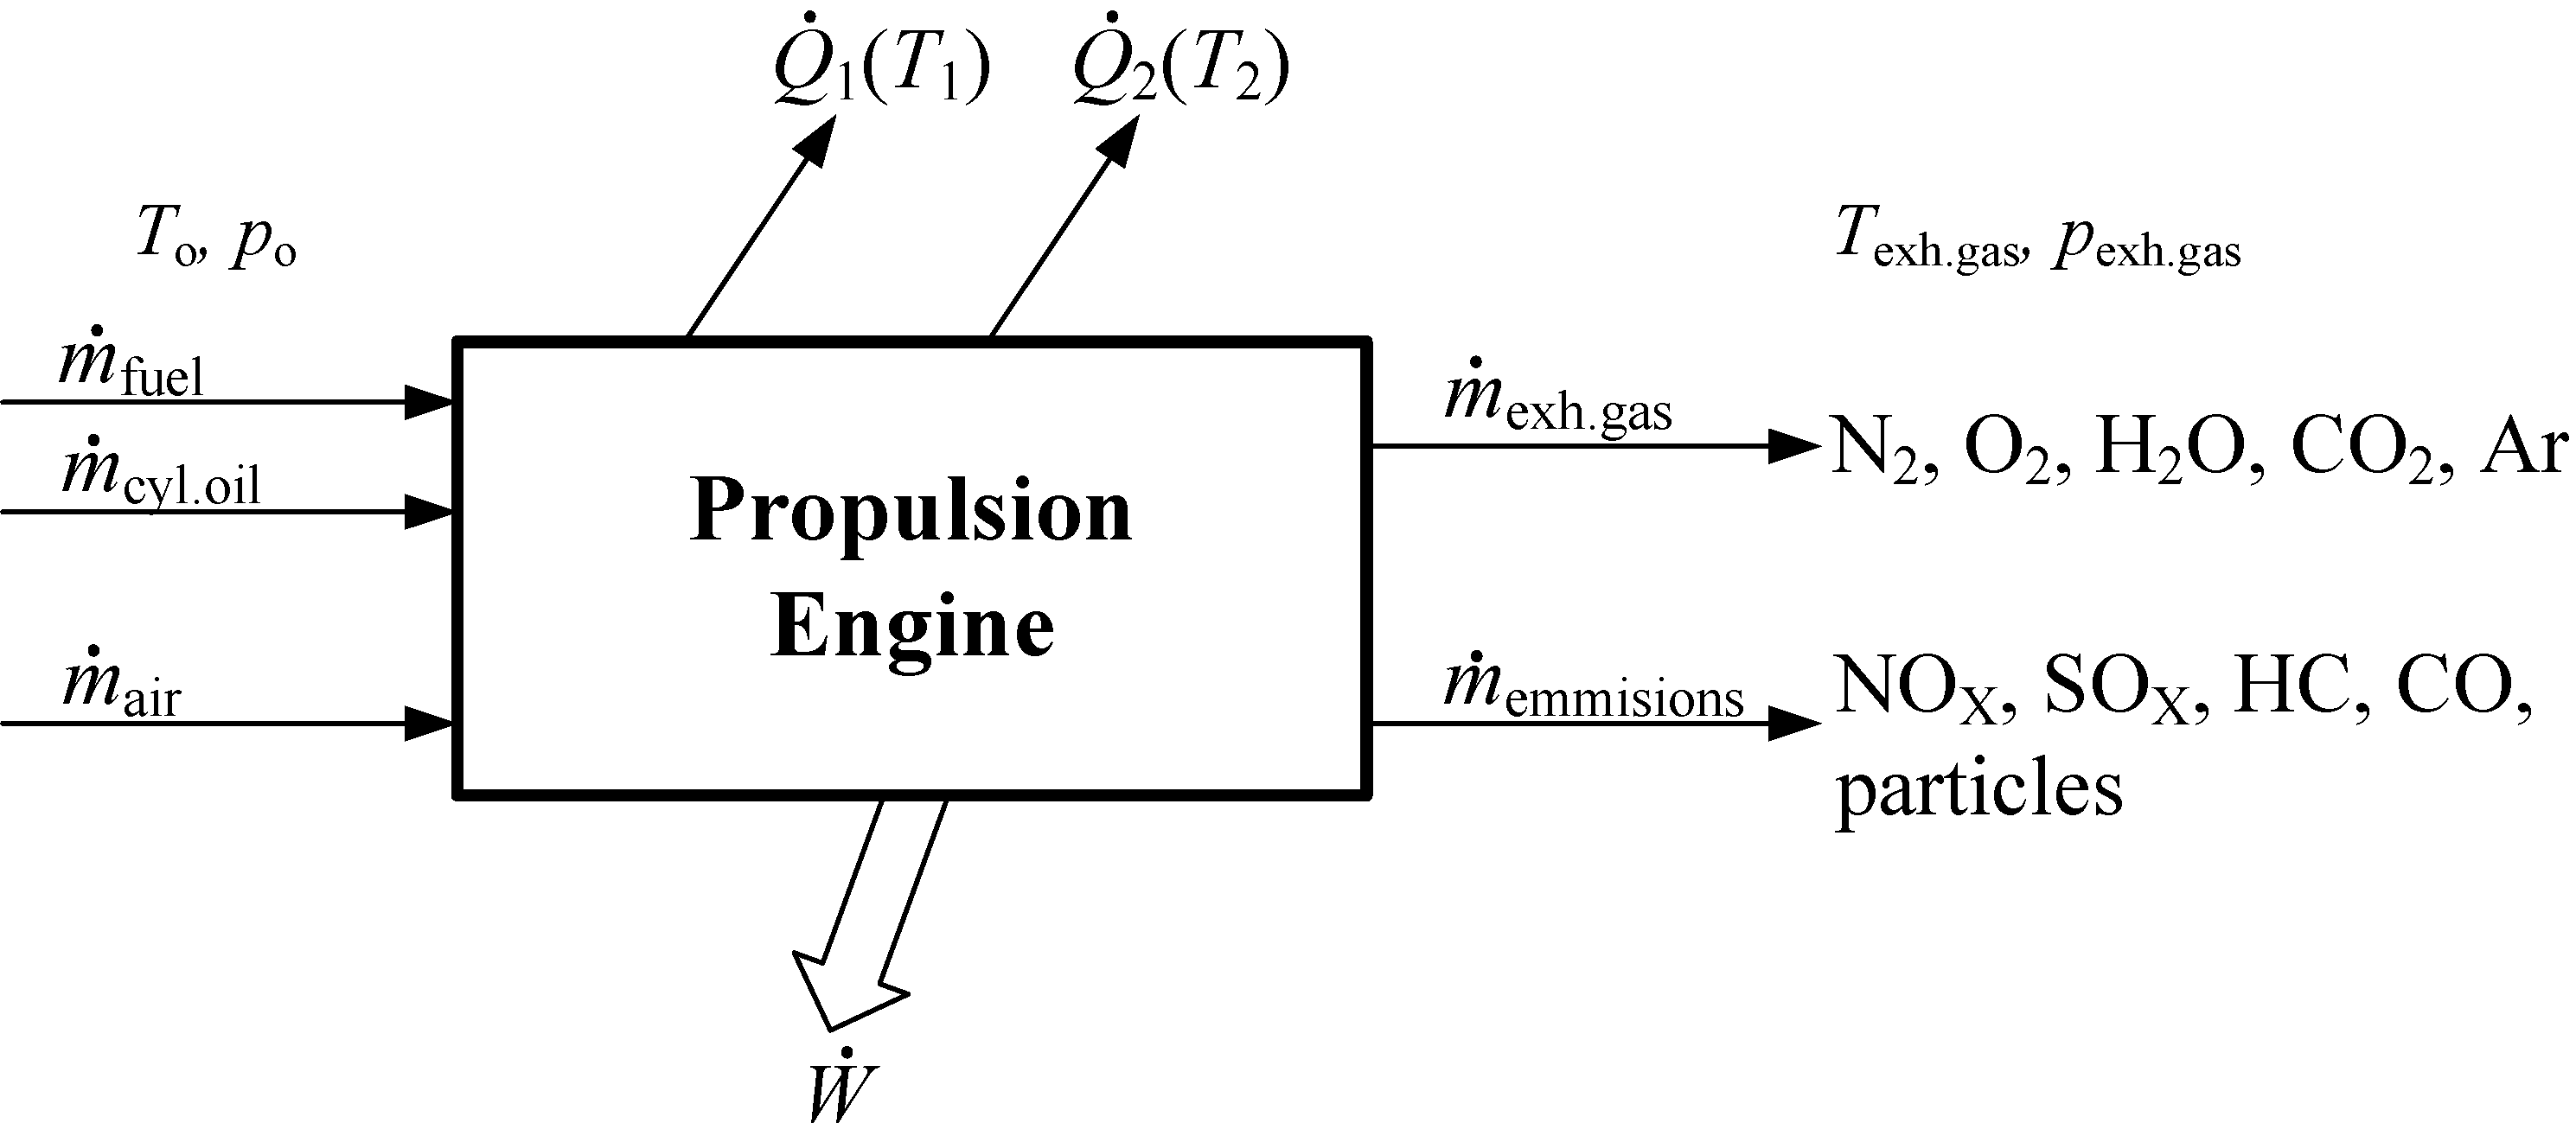 Energies Free Full Text Thermodynamic Analysis Of A Ship Power Moreover Steam Engine Parts Diagram On Simple Piston 07 07368 G002 1024